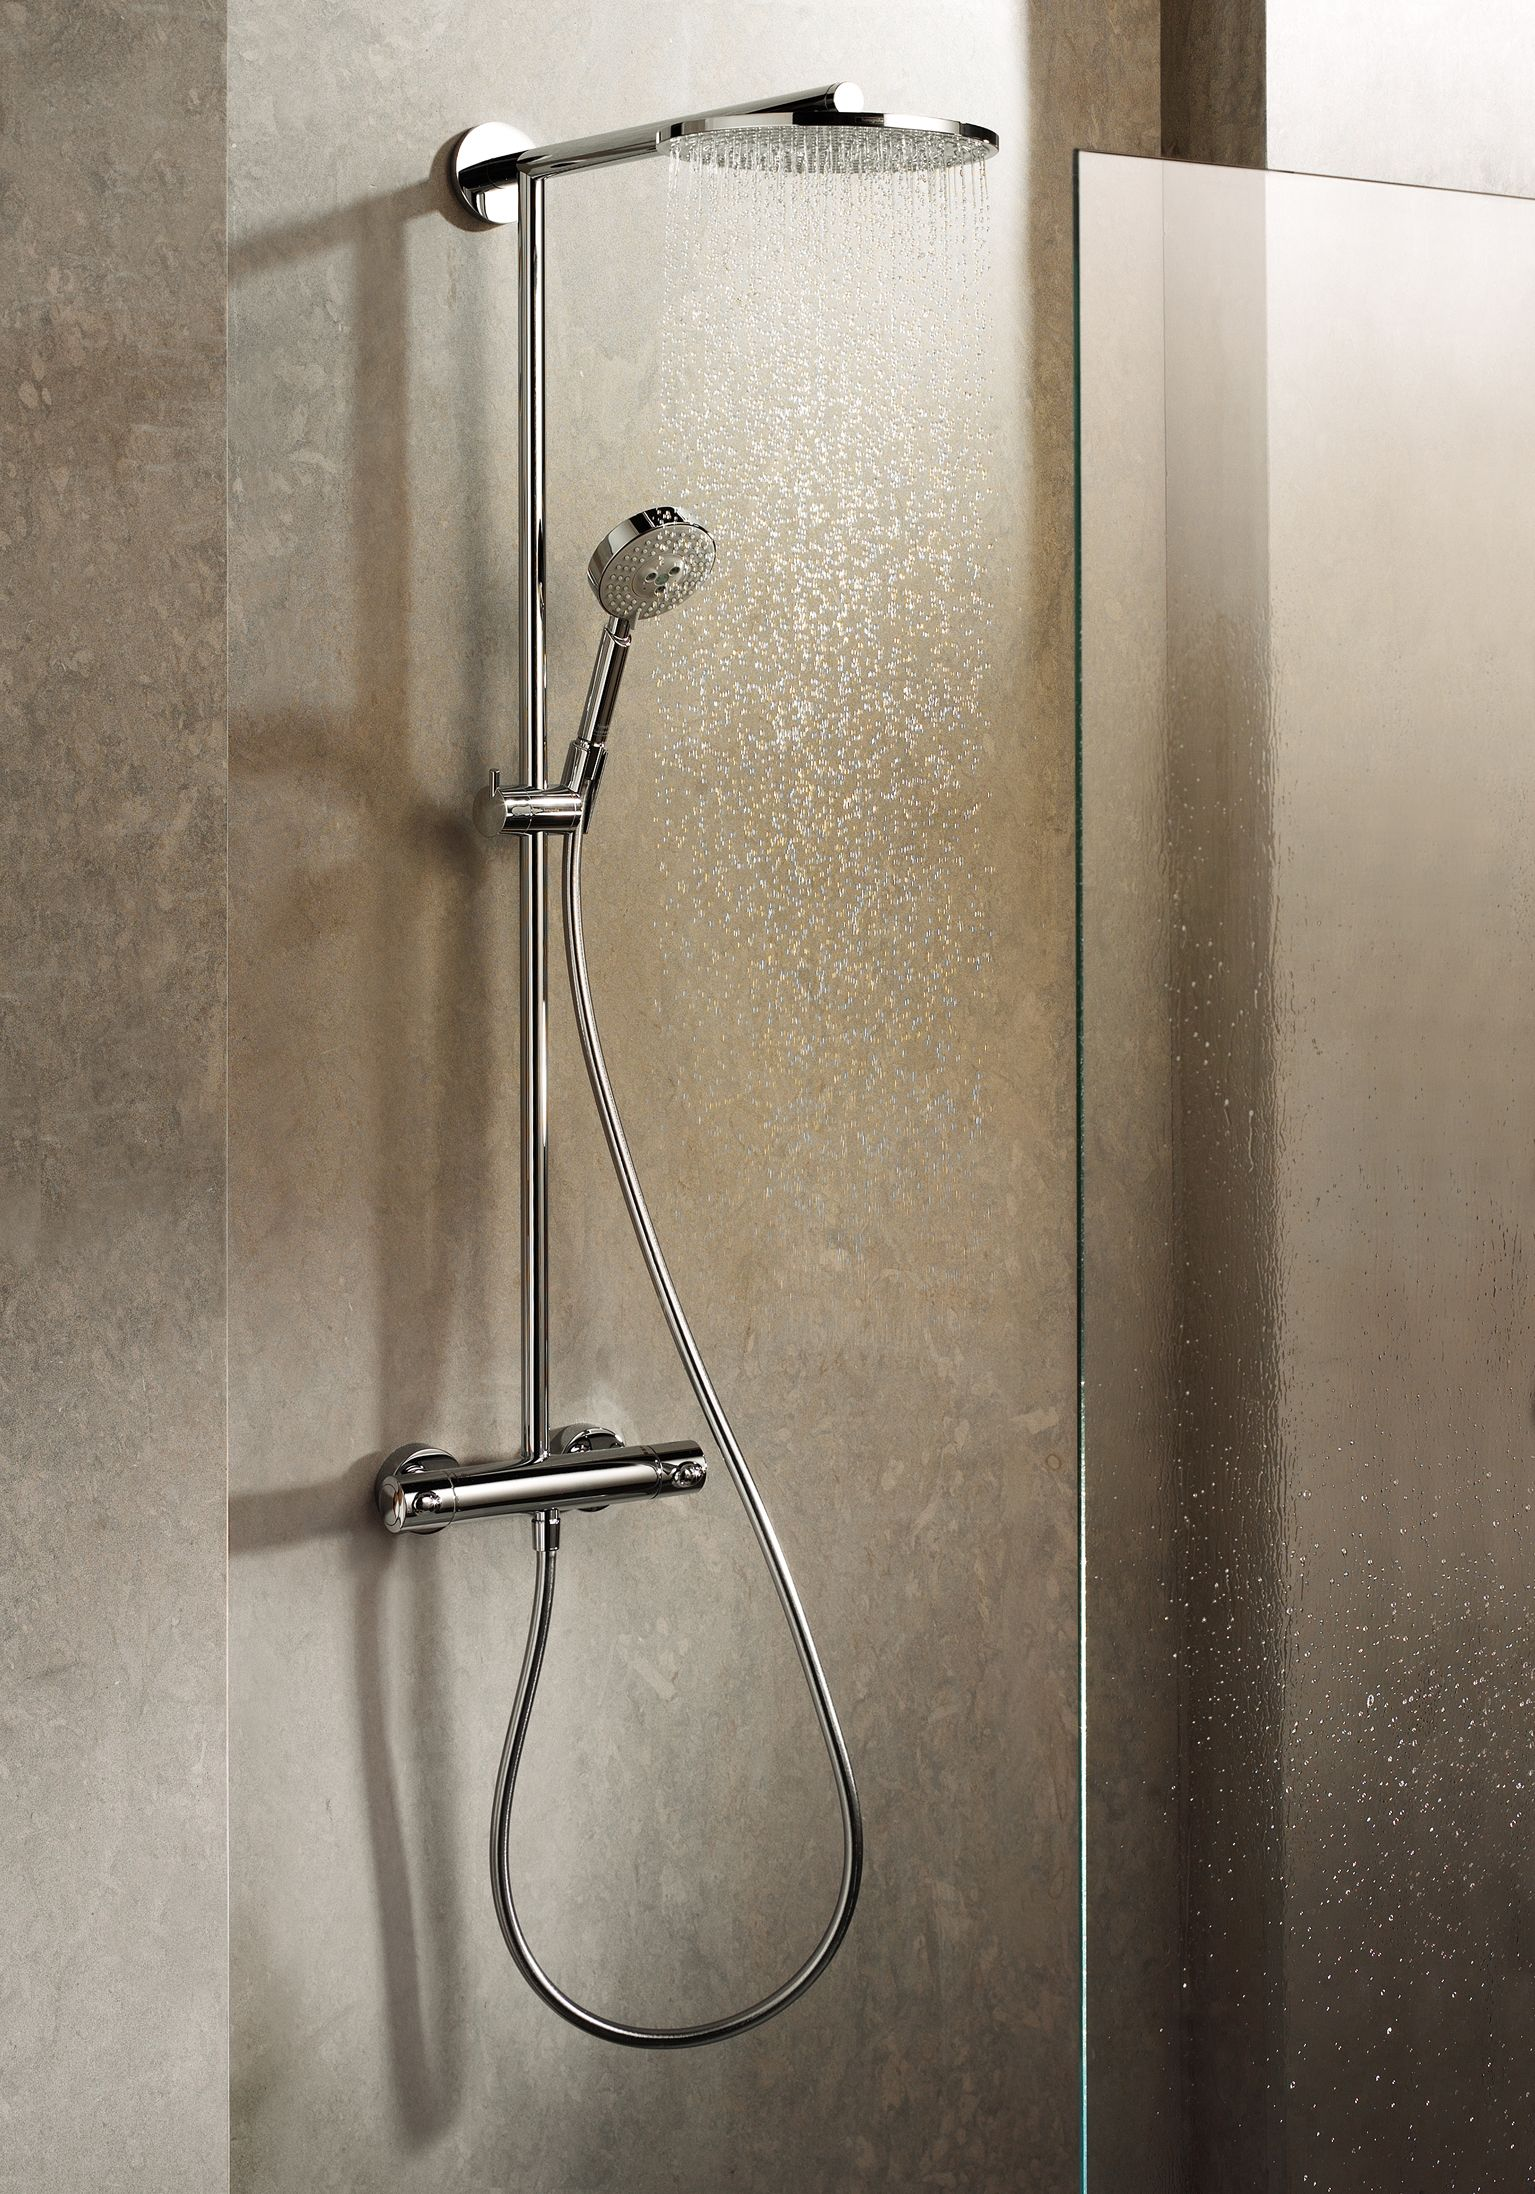 Hansgrohe Shower System in a bathroom setting. The actual product ...